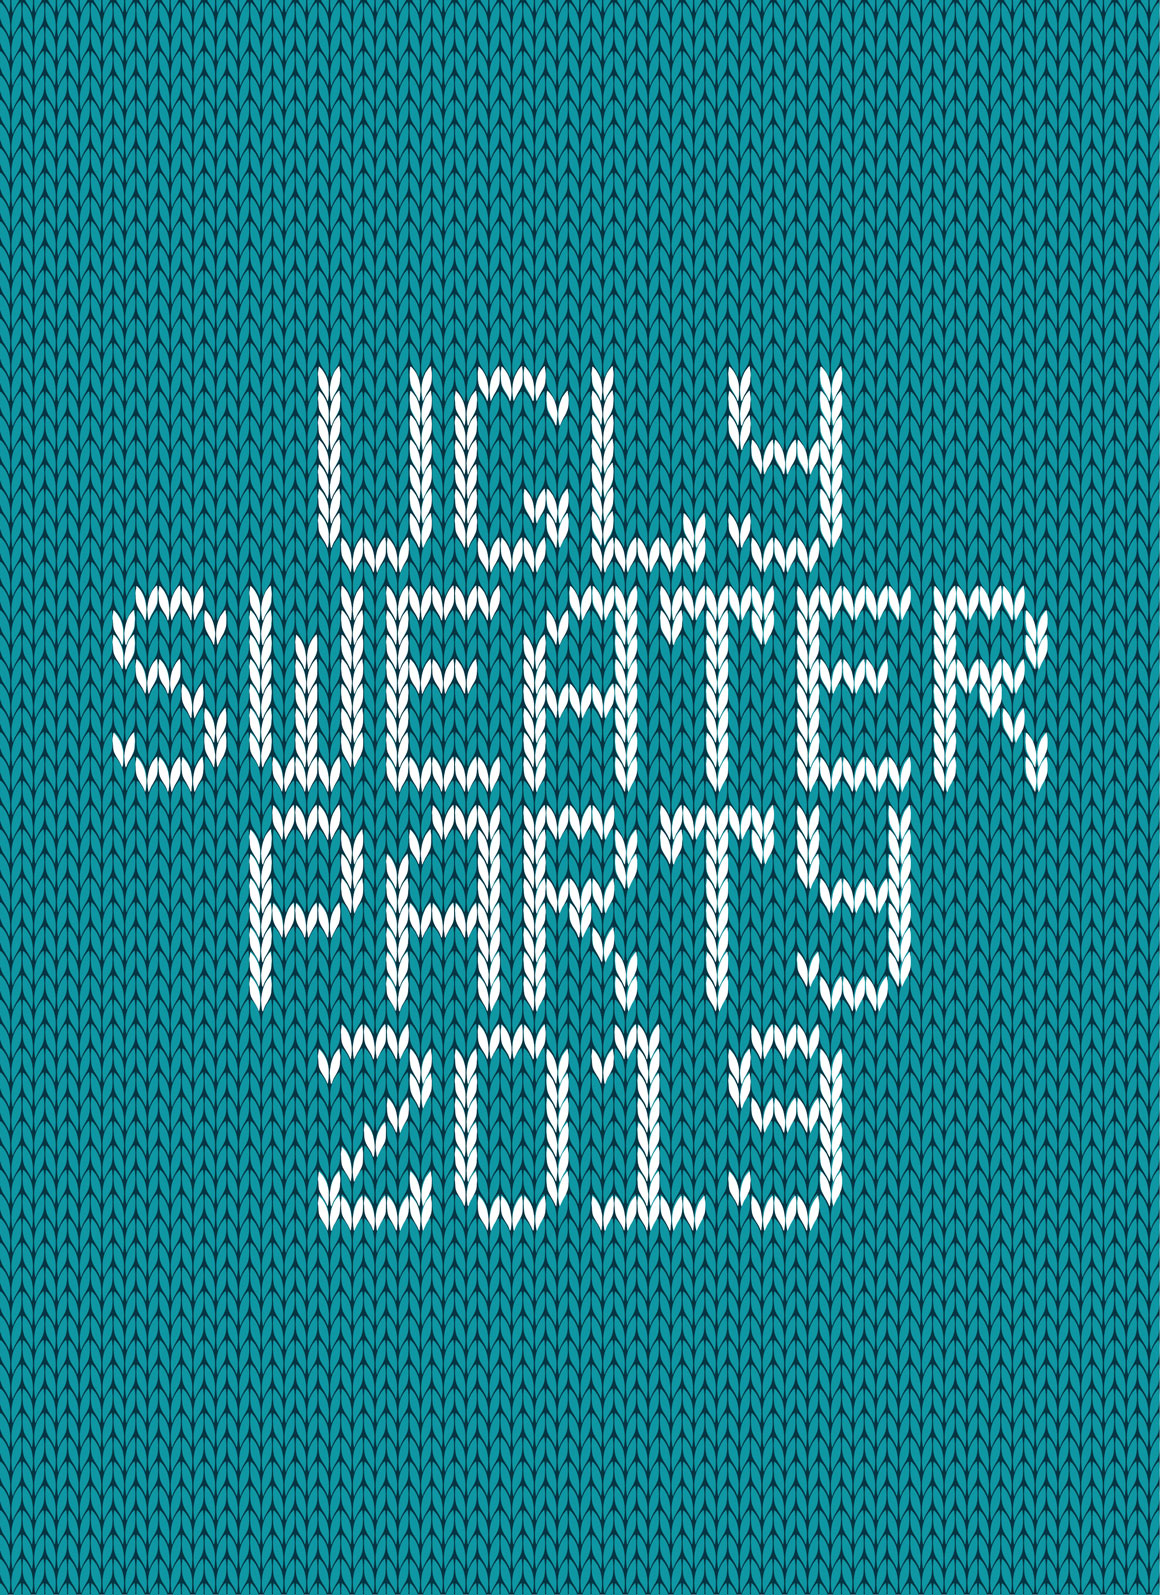 Christmas Knitted Font Ol Version 2.0 example image 9